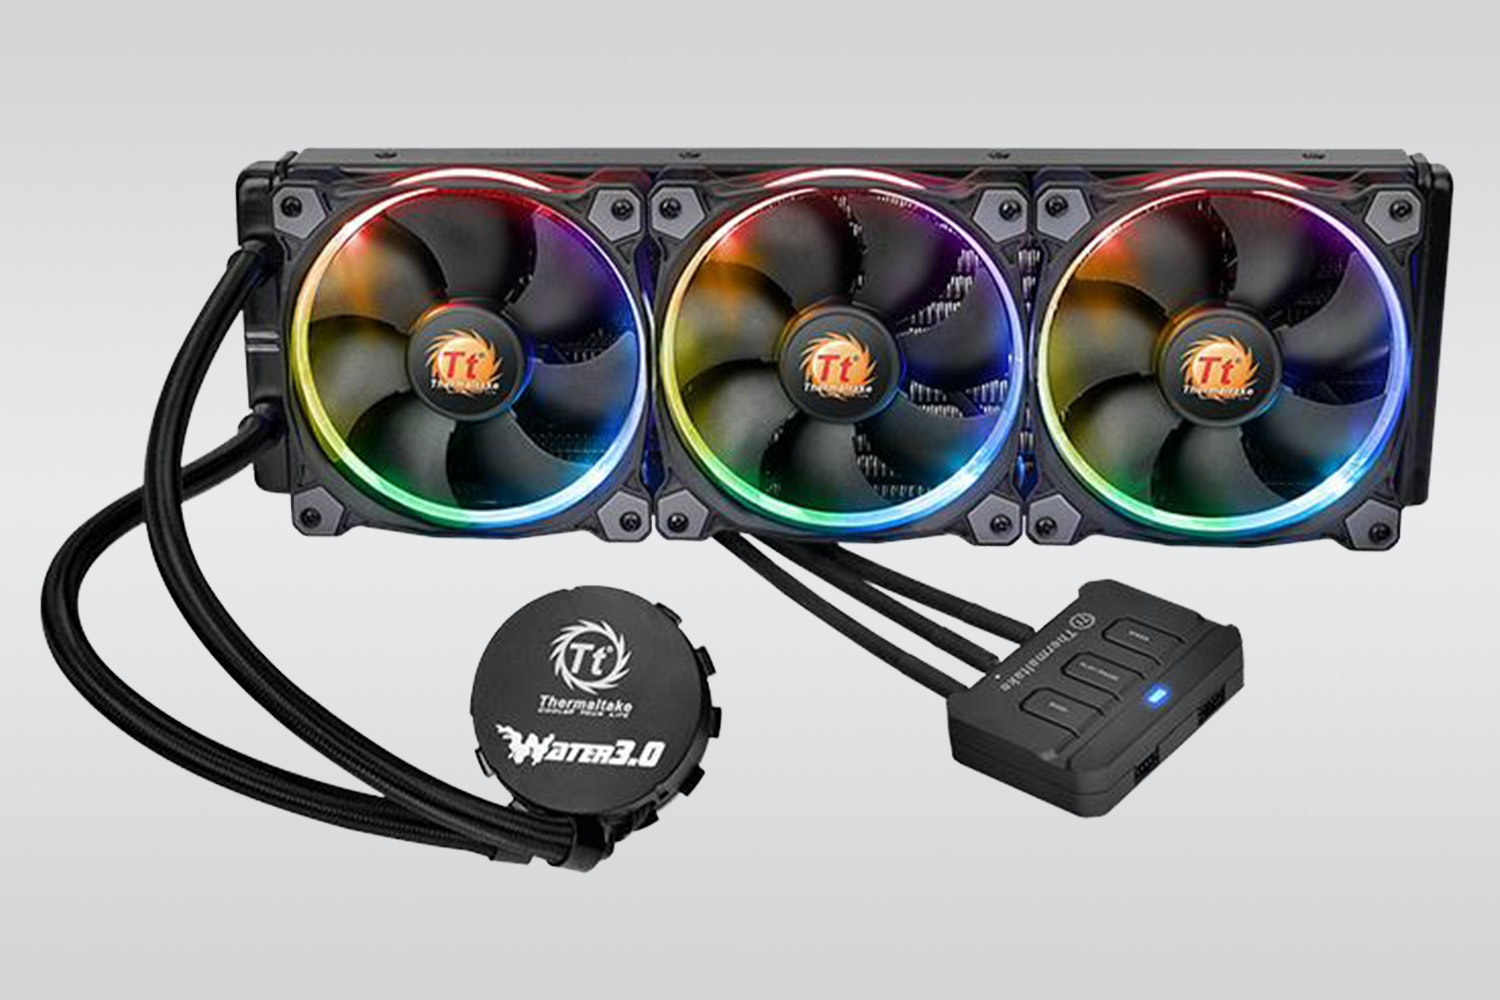 Triple-fan Water 3.0 Riing RGB 360 (+ $30)